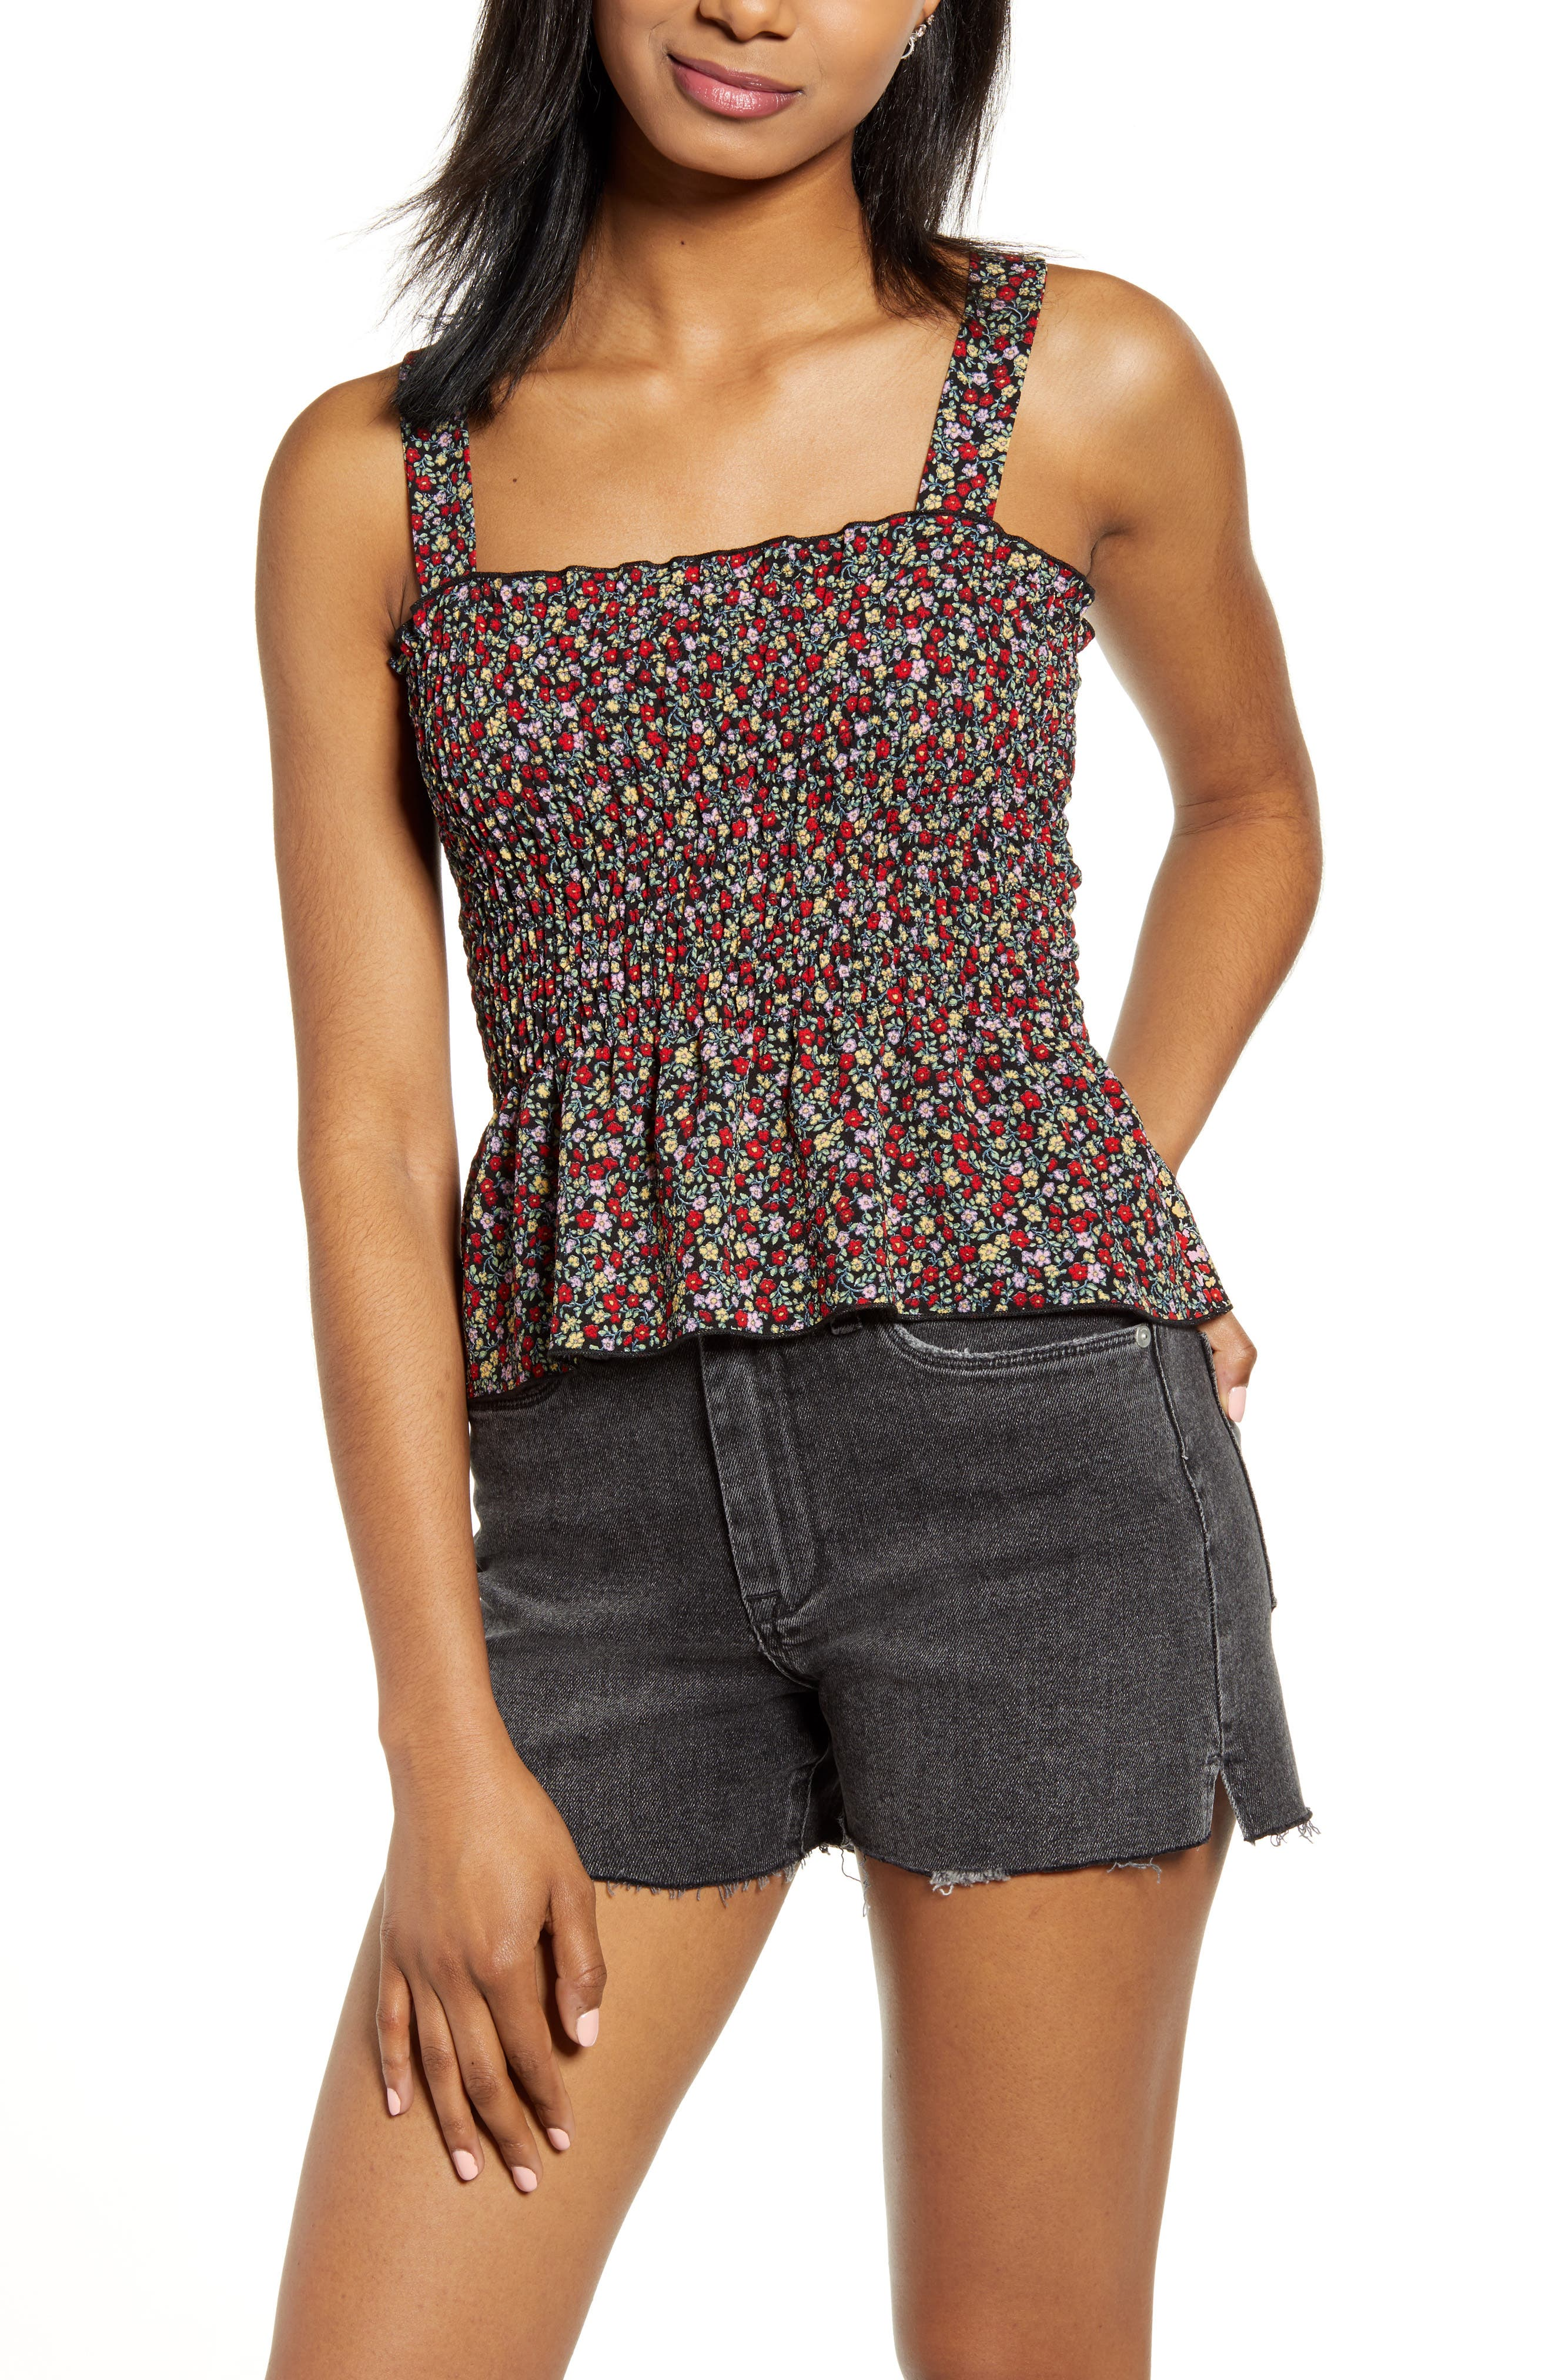 73feeb01d7c7 One Clothing All Women | Nordstrom